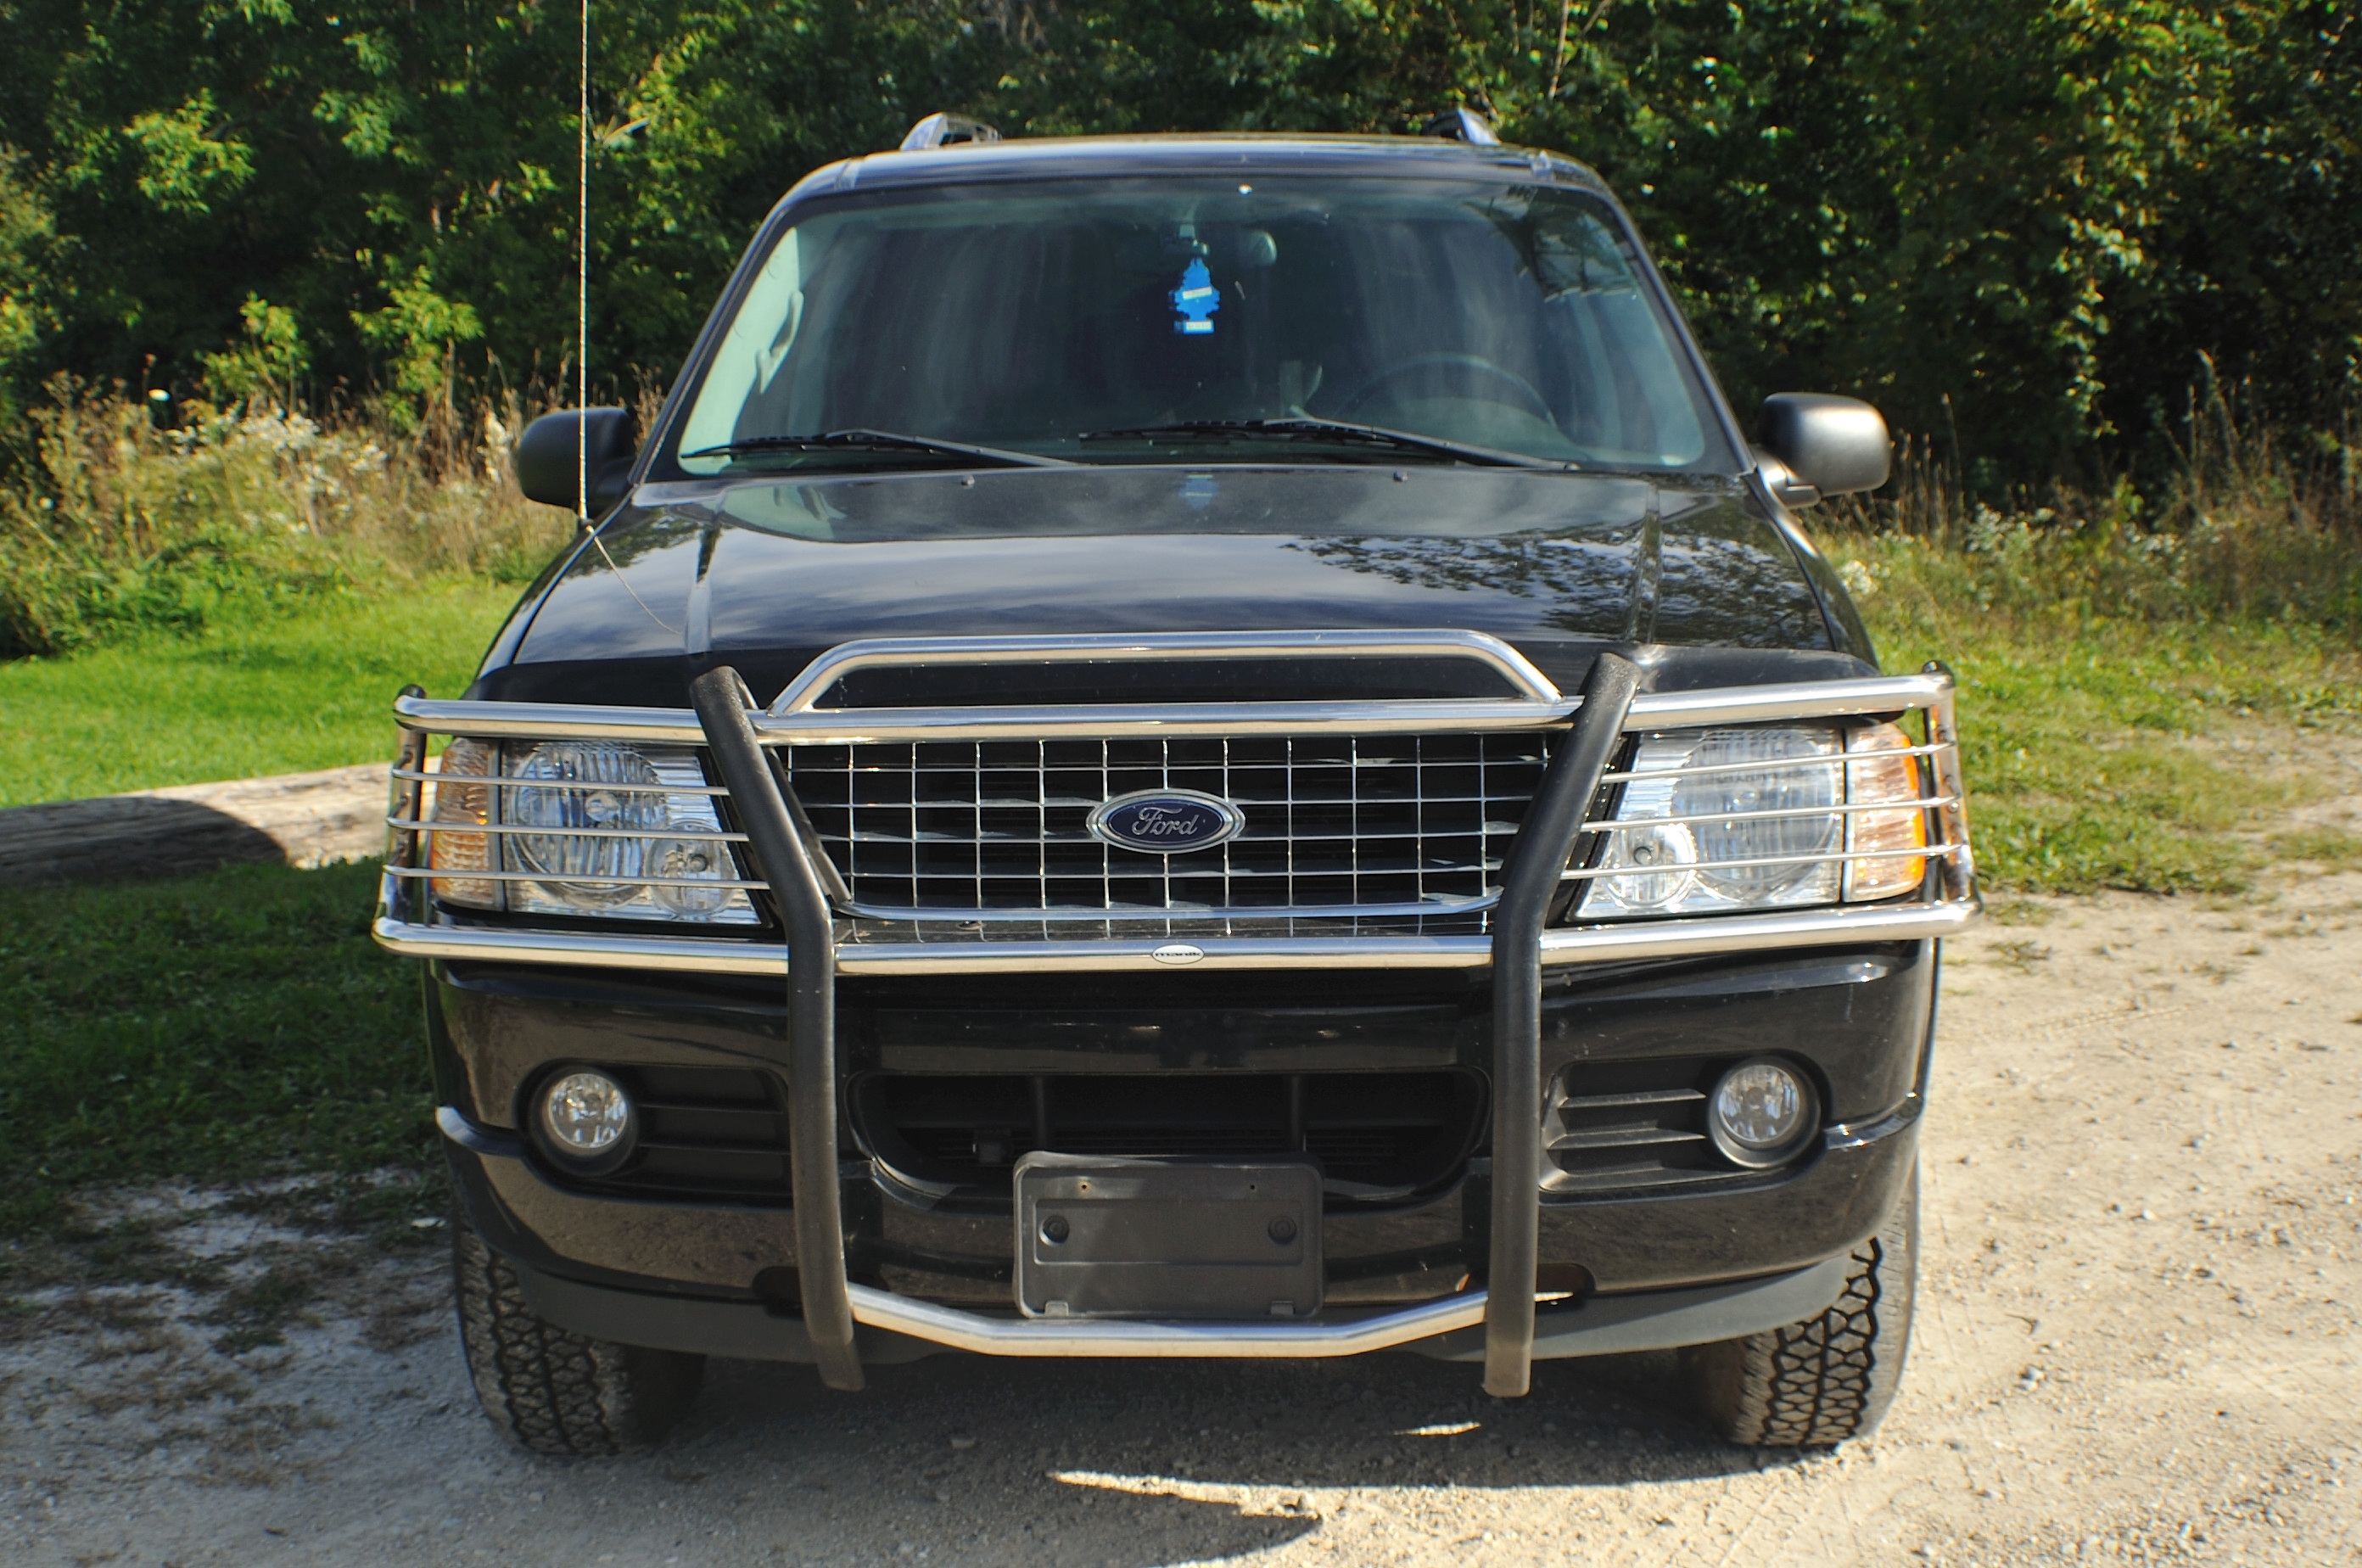 2004 Ford Explorer XLT Black Limited Used SUV 4x4 Sale Gurnee Kenosha Mchenry